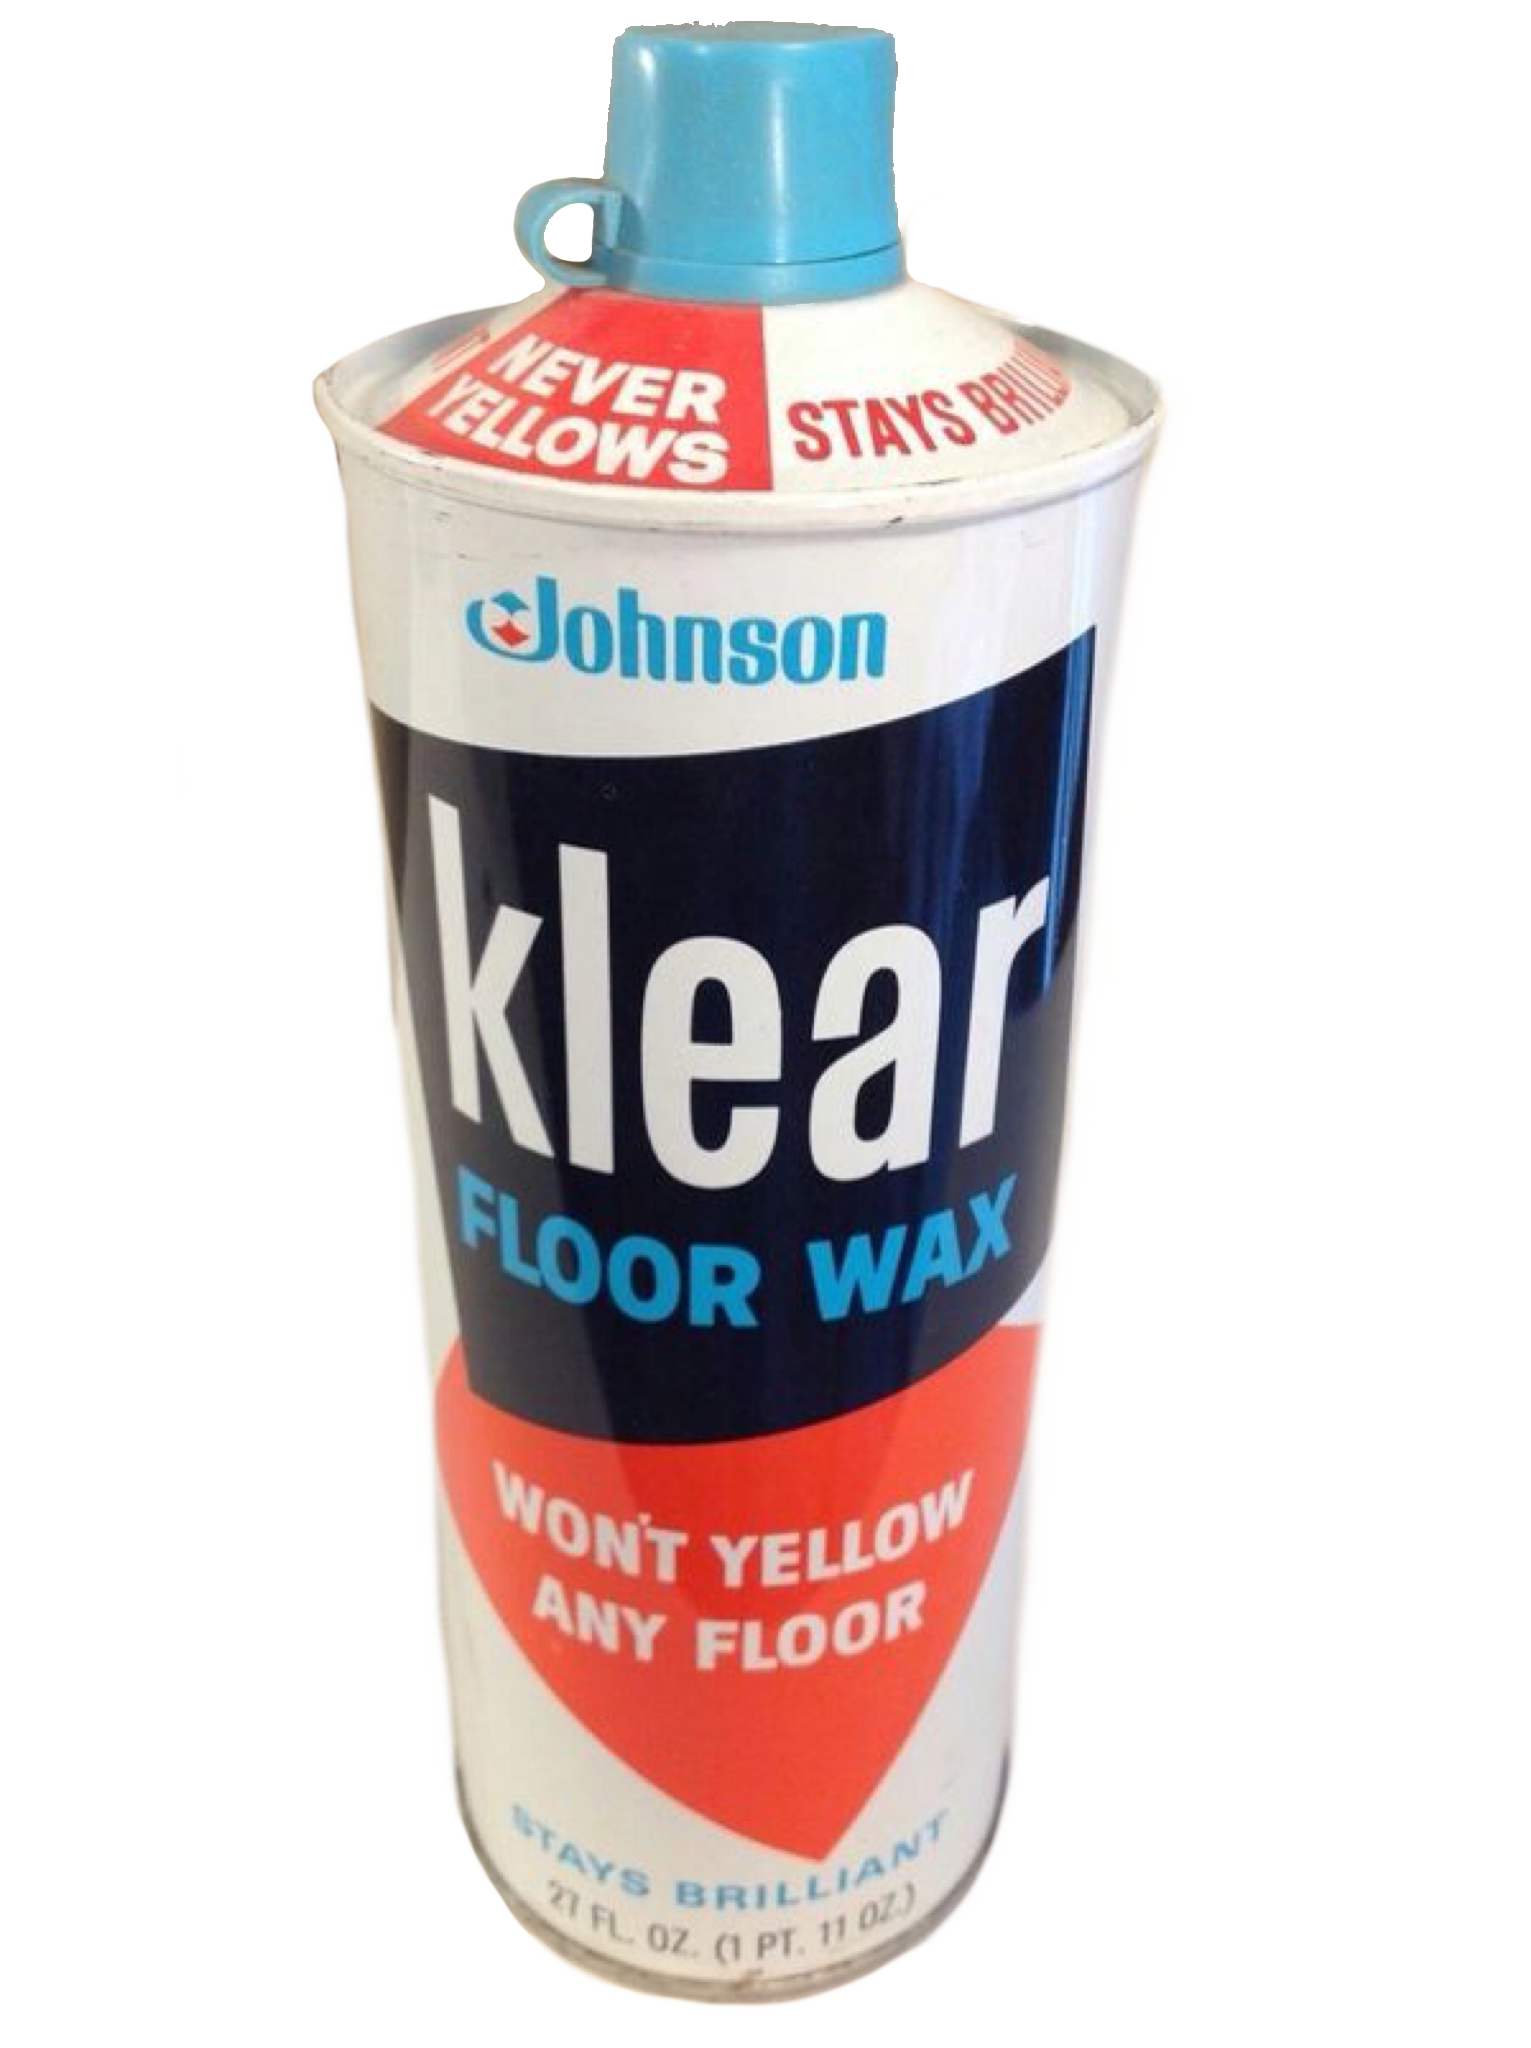 Johnson S Klear Floor Wax I Am Sure Many Will Agree That They Probably Don T Miss These Days